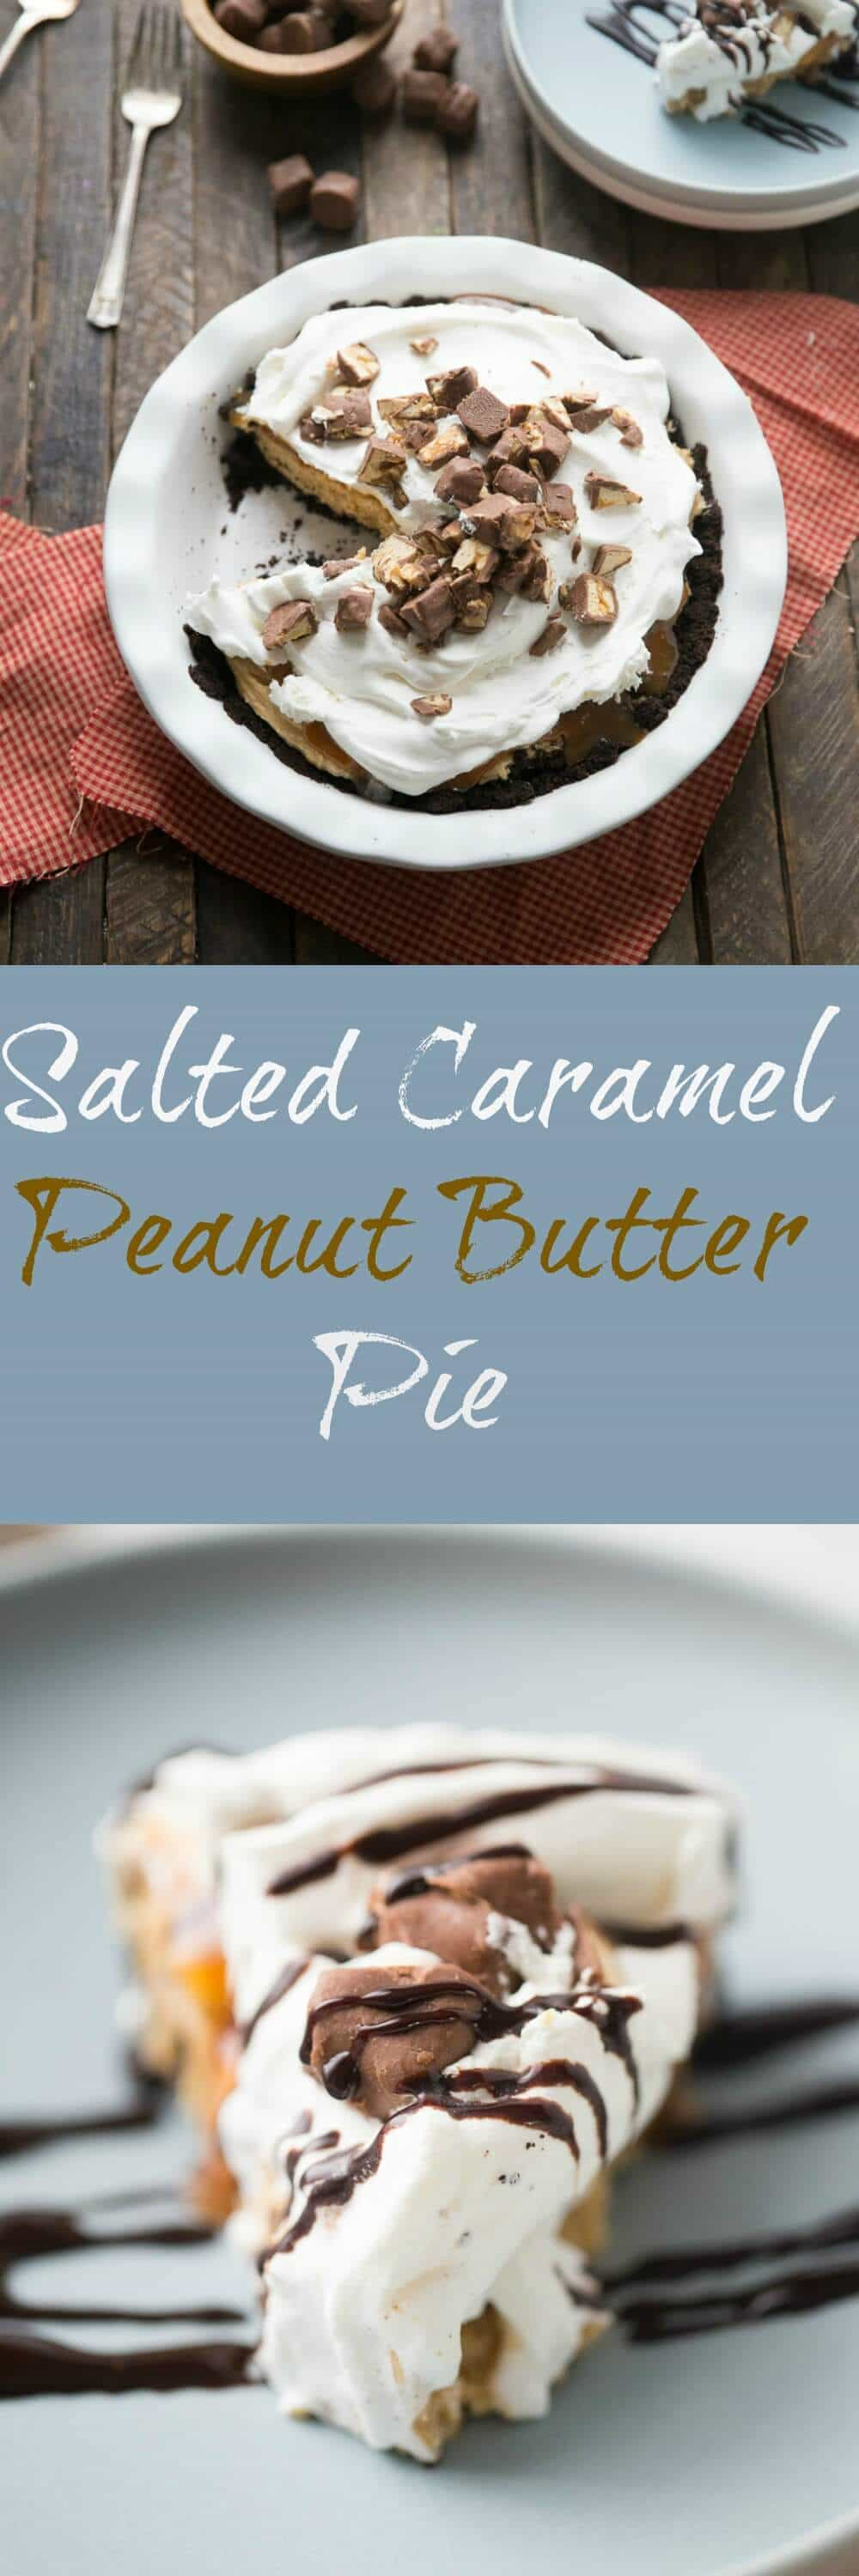 Peanut butter pie is always a favorite but when you add caramel and chocolate candies, you have an unforgettable pie that will become your most requested dessert!